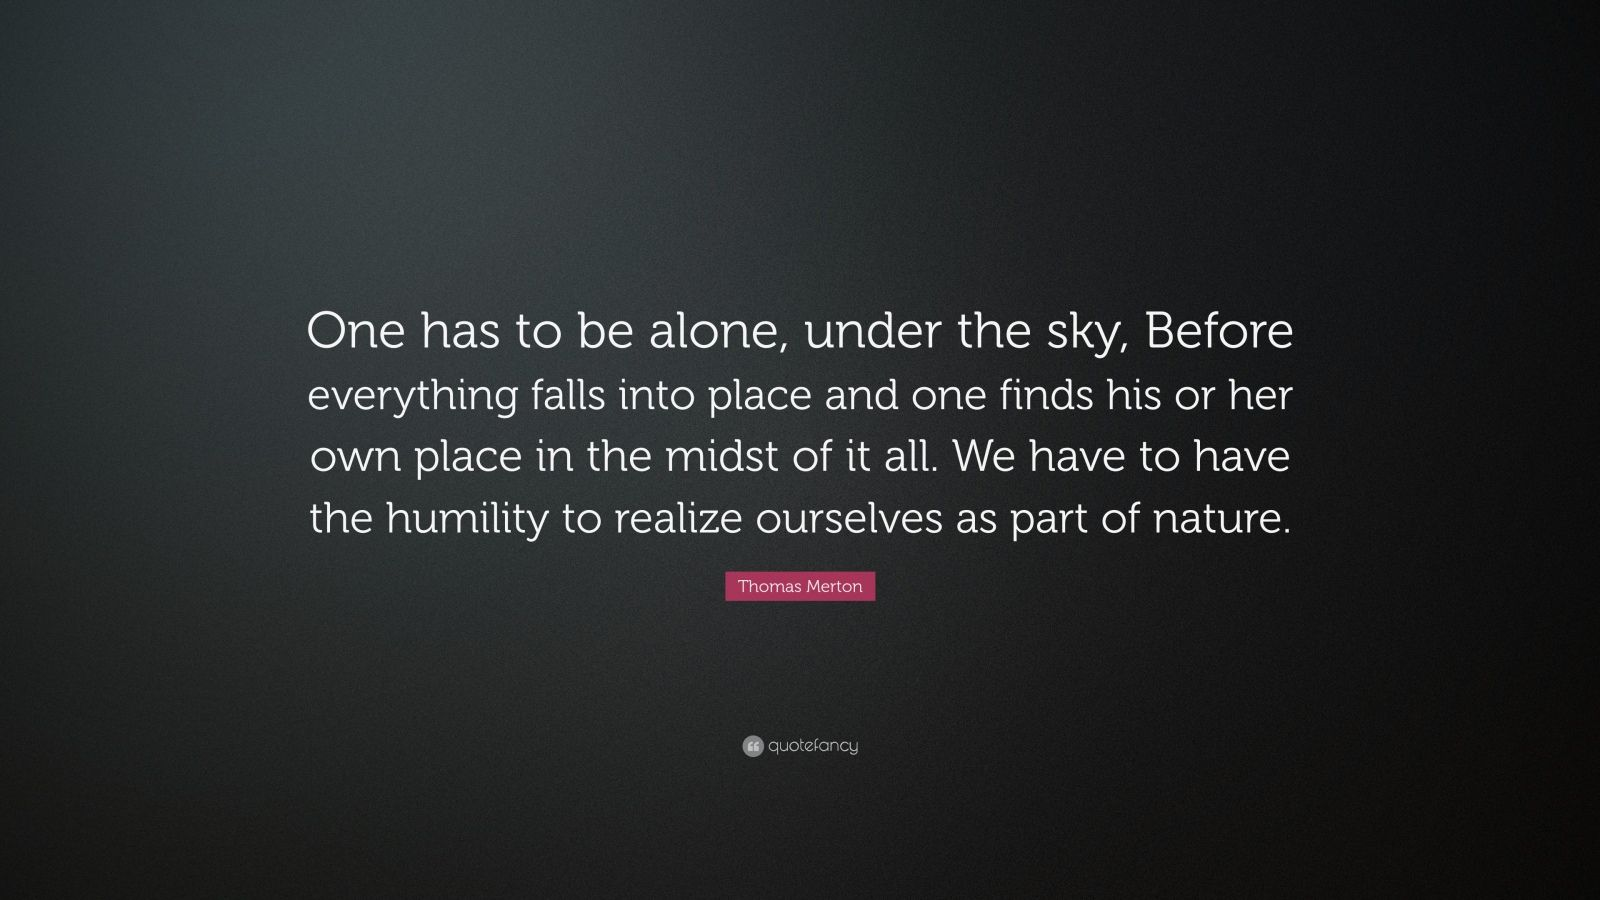 "Thomas Merton Quote: ""One has to be alone, under the sky, Before everything falls into place and one finds his or her own place in the midst of it all. We have to have the humility to realize ourselves as part of nature."""